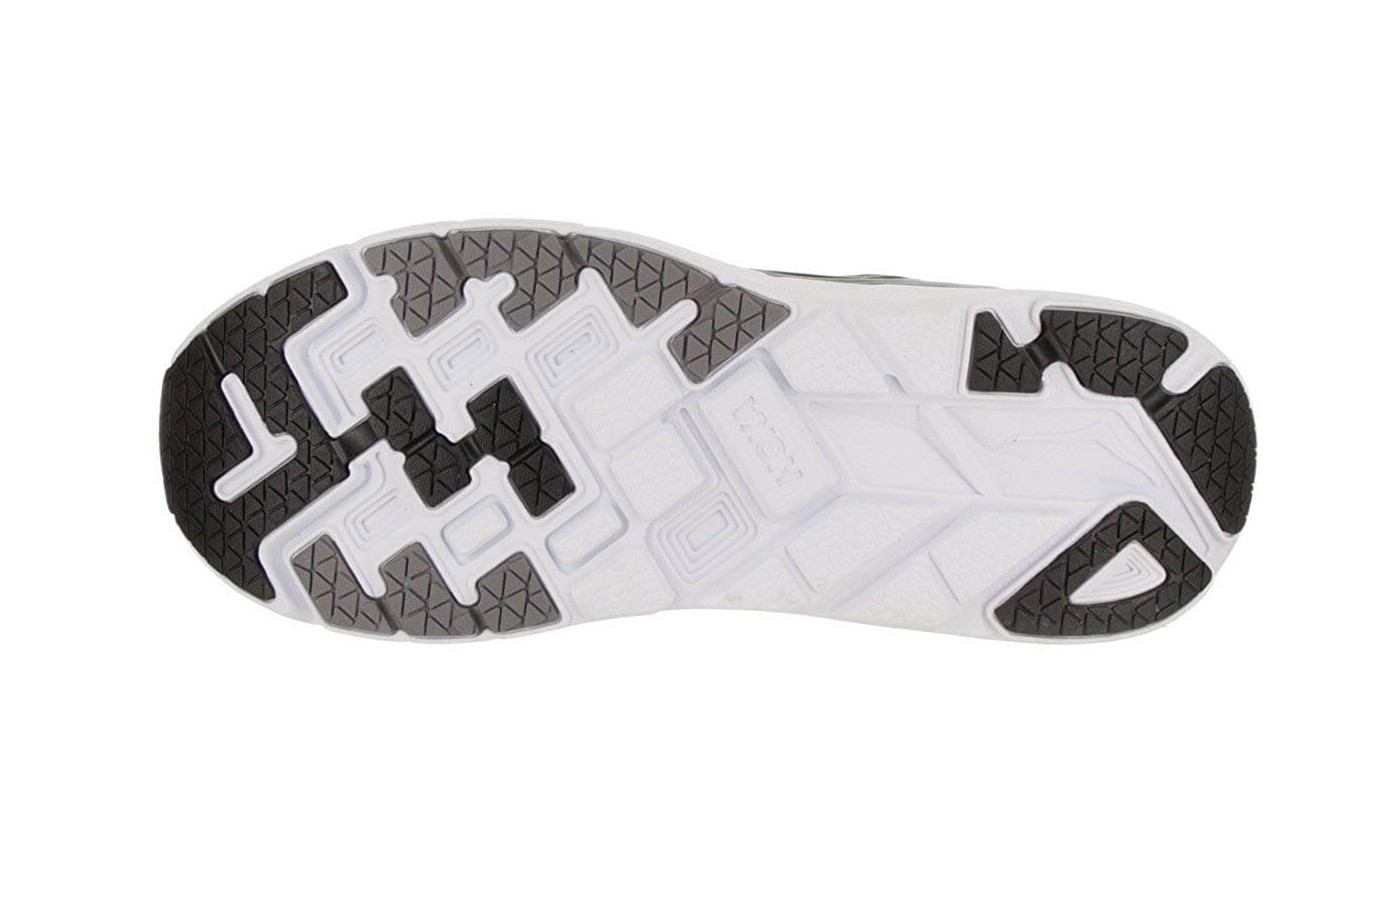 High-Abrasion Lightweight Rubber is placed over key parts of the Clifton 5's outsole